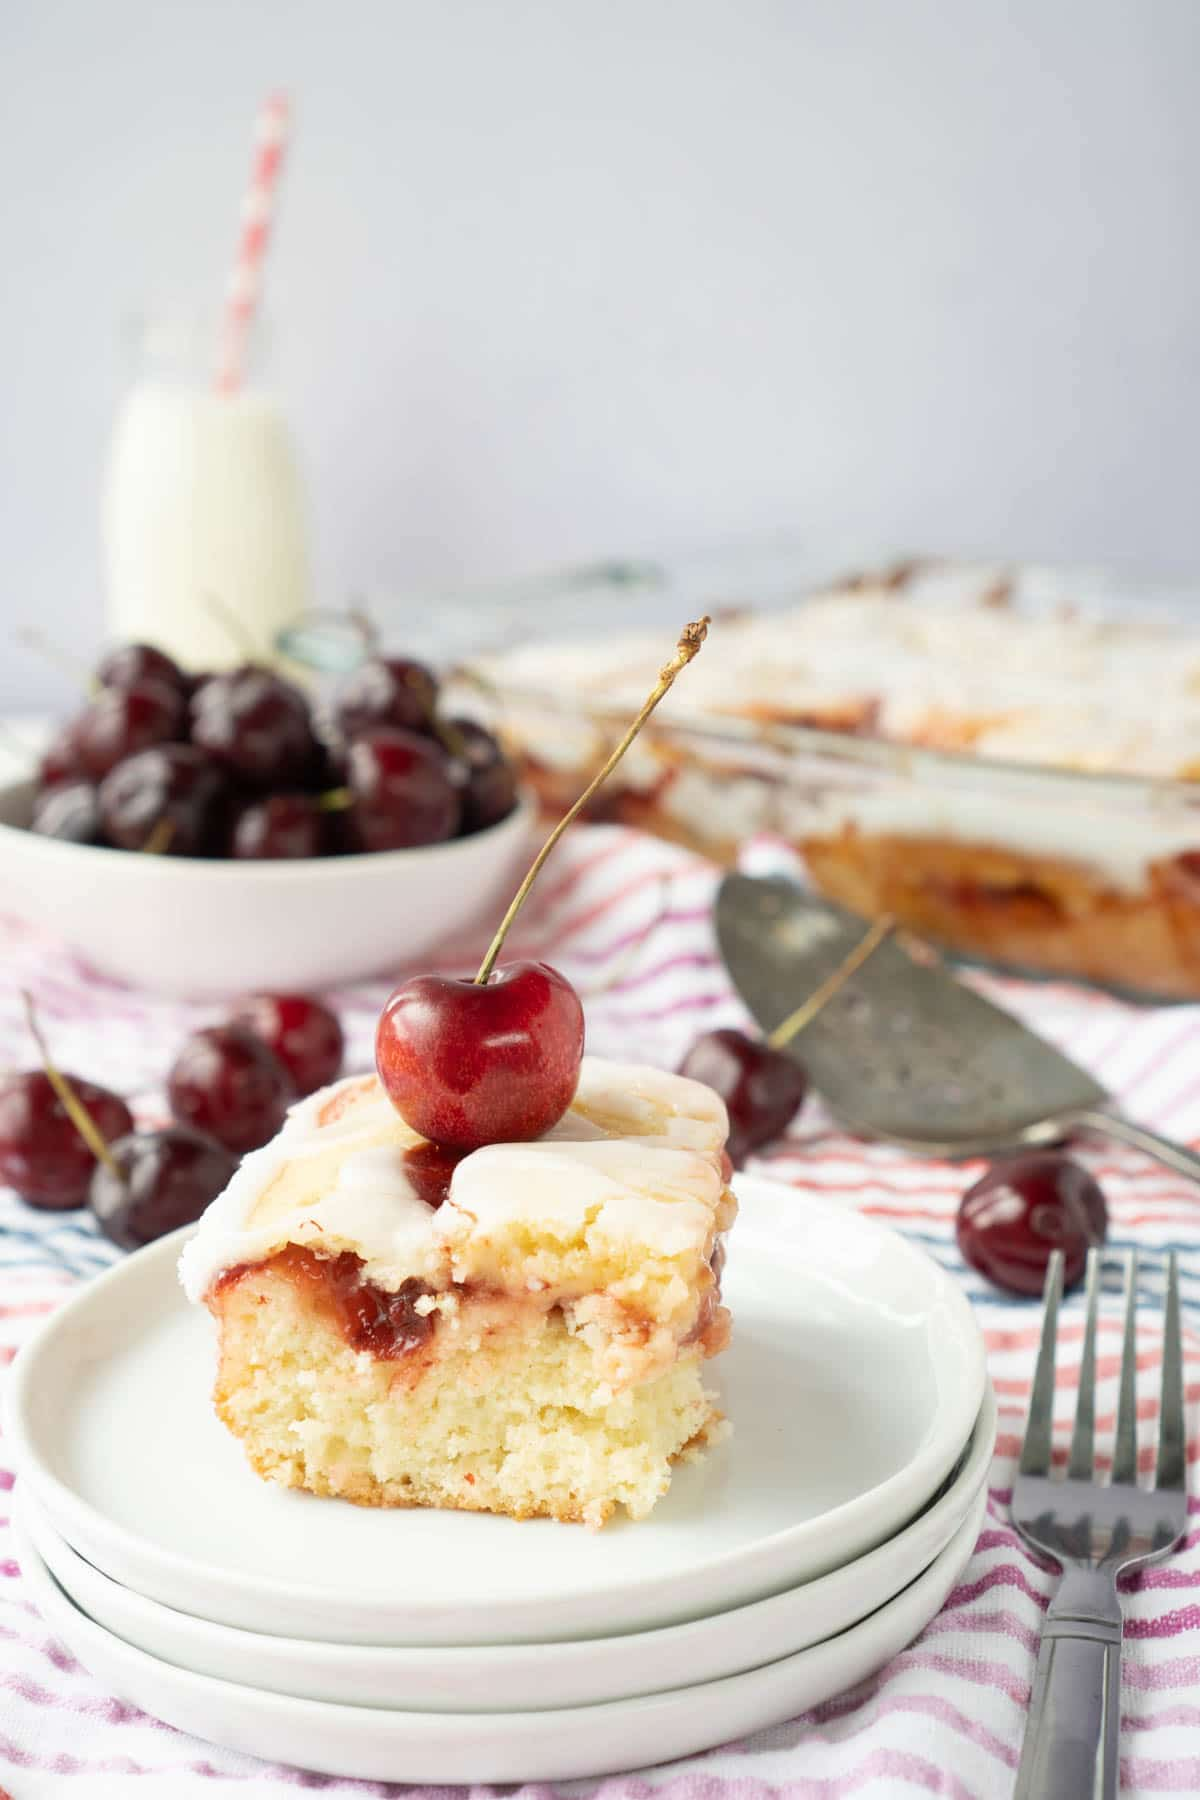 Piece of cherry cake on white plates